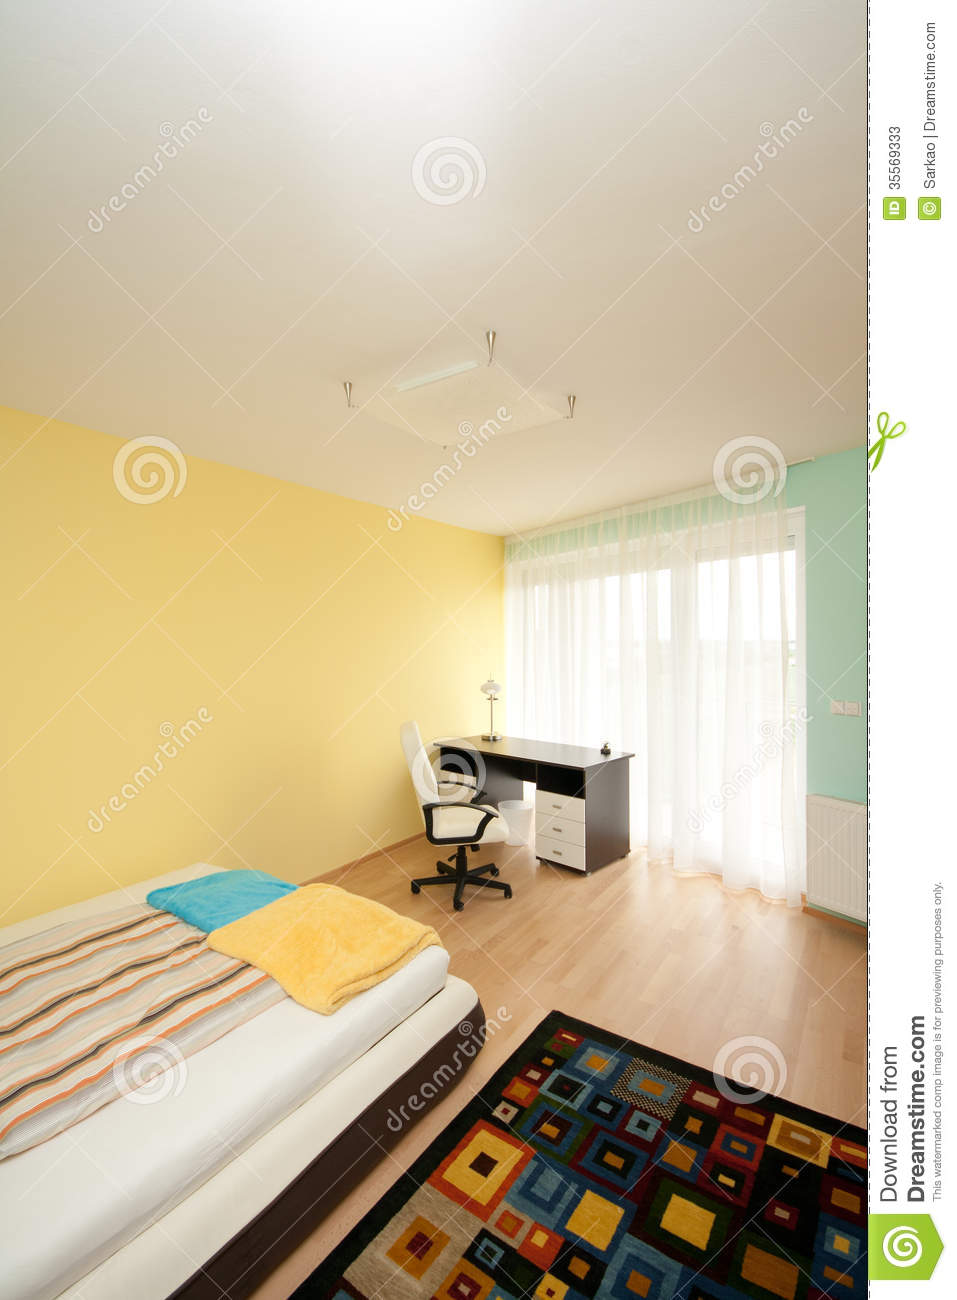 Simple bedroom stock image image of bright furniture 35569333 - Image of simple bedroom ...